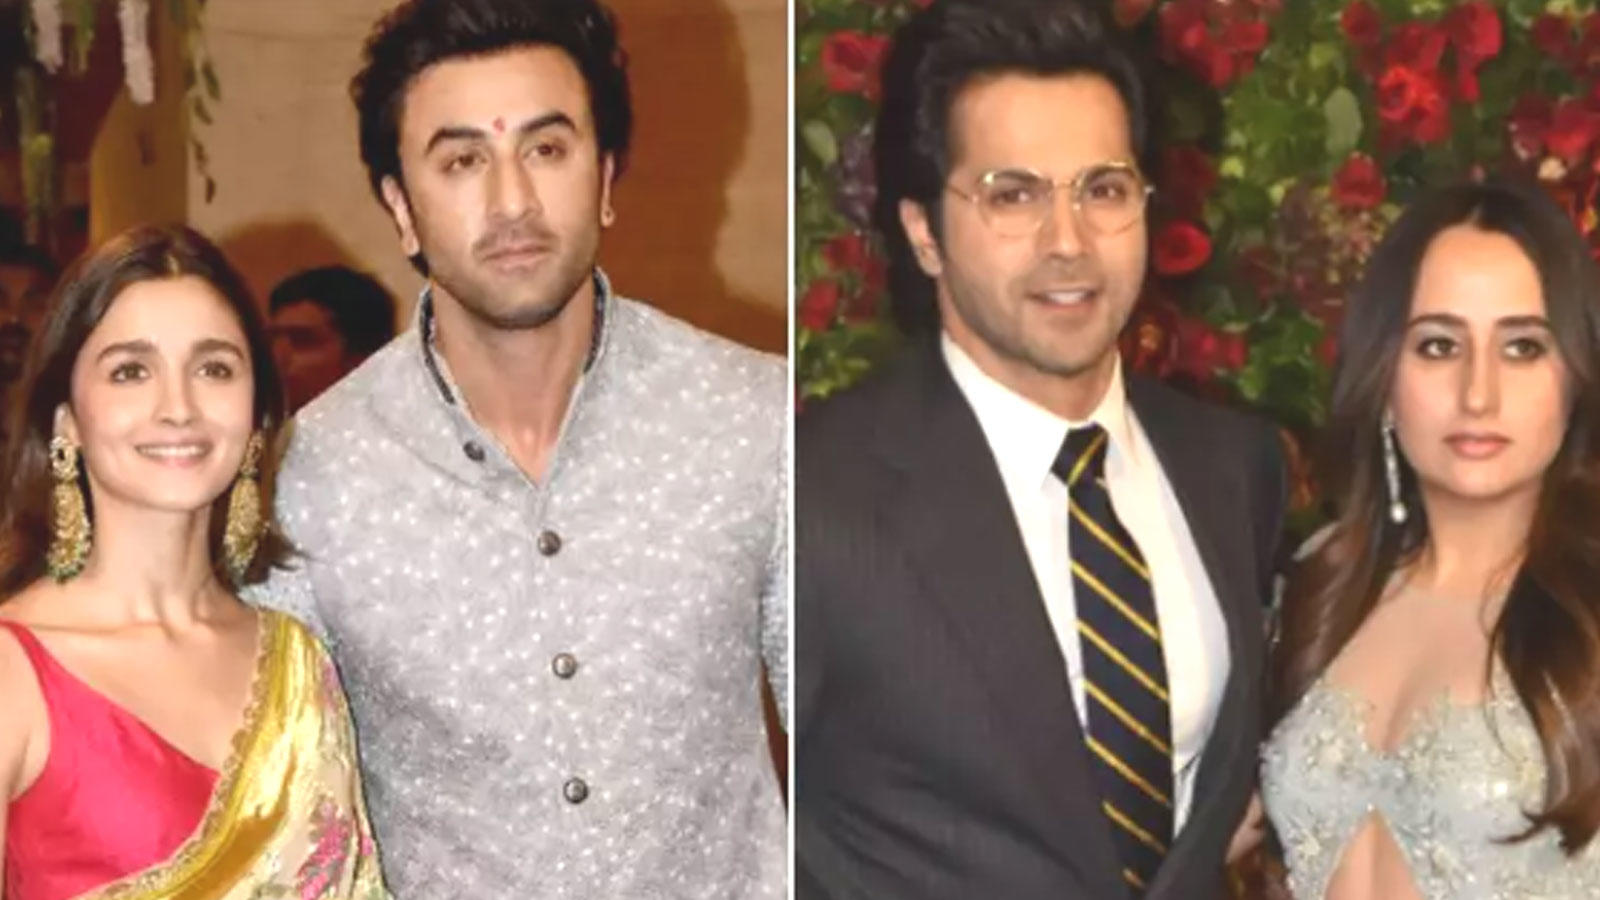 varun-dhawan-natasha-dalals-wedding-alia-bhatt-and-ranbir-kapoor-to-attend-the-function